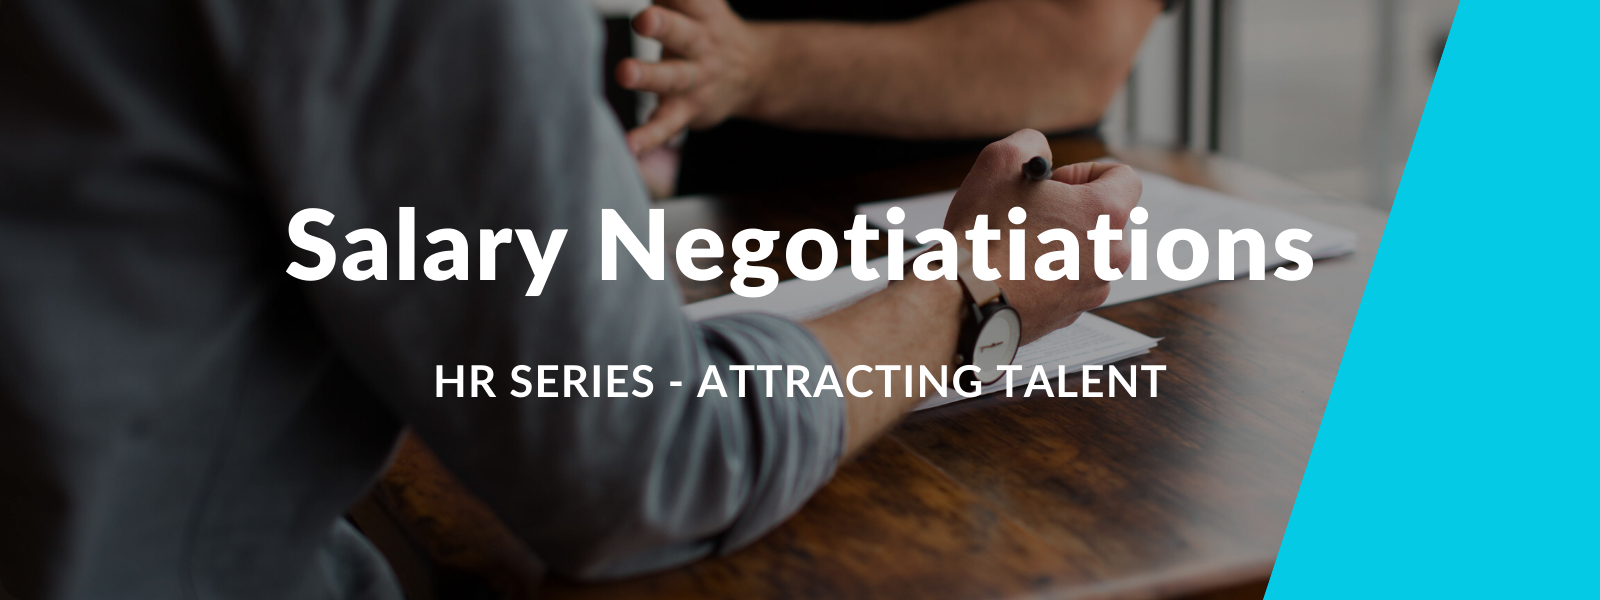 HR Series - How to negotiate salary and benefits and attract talent